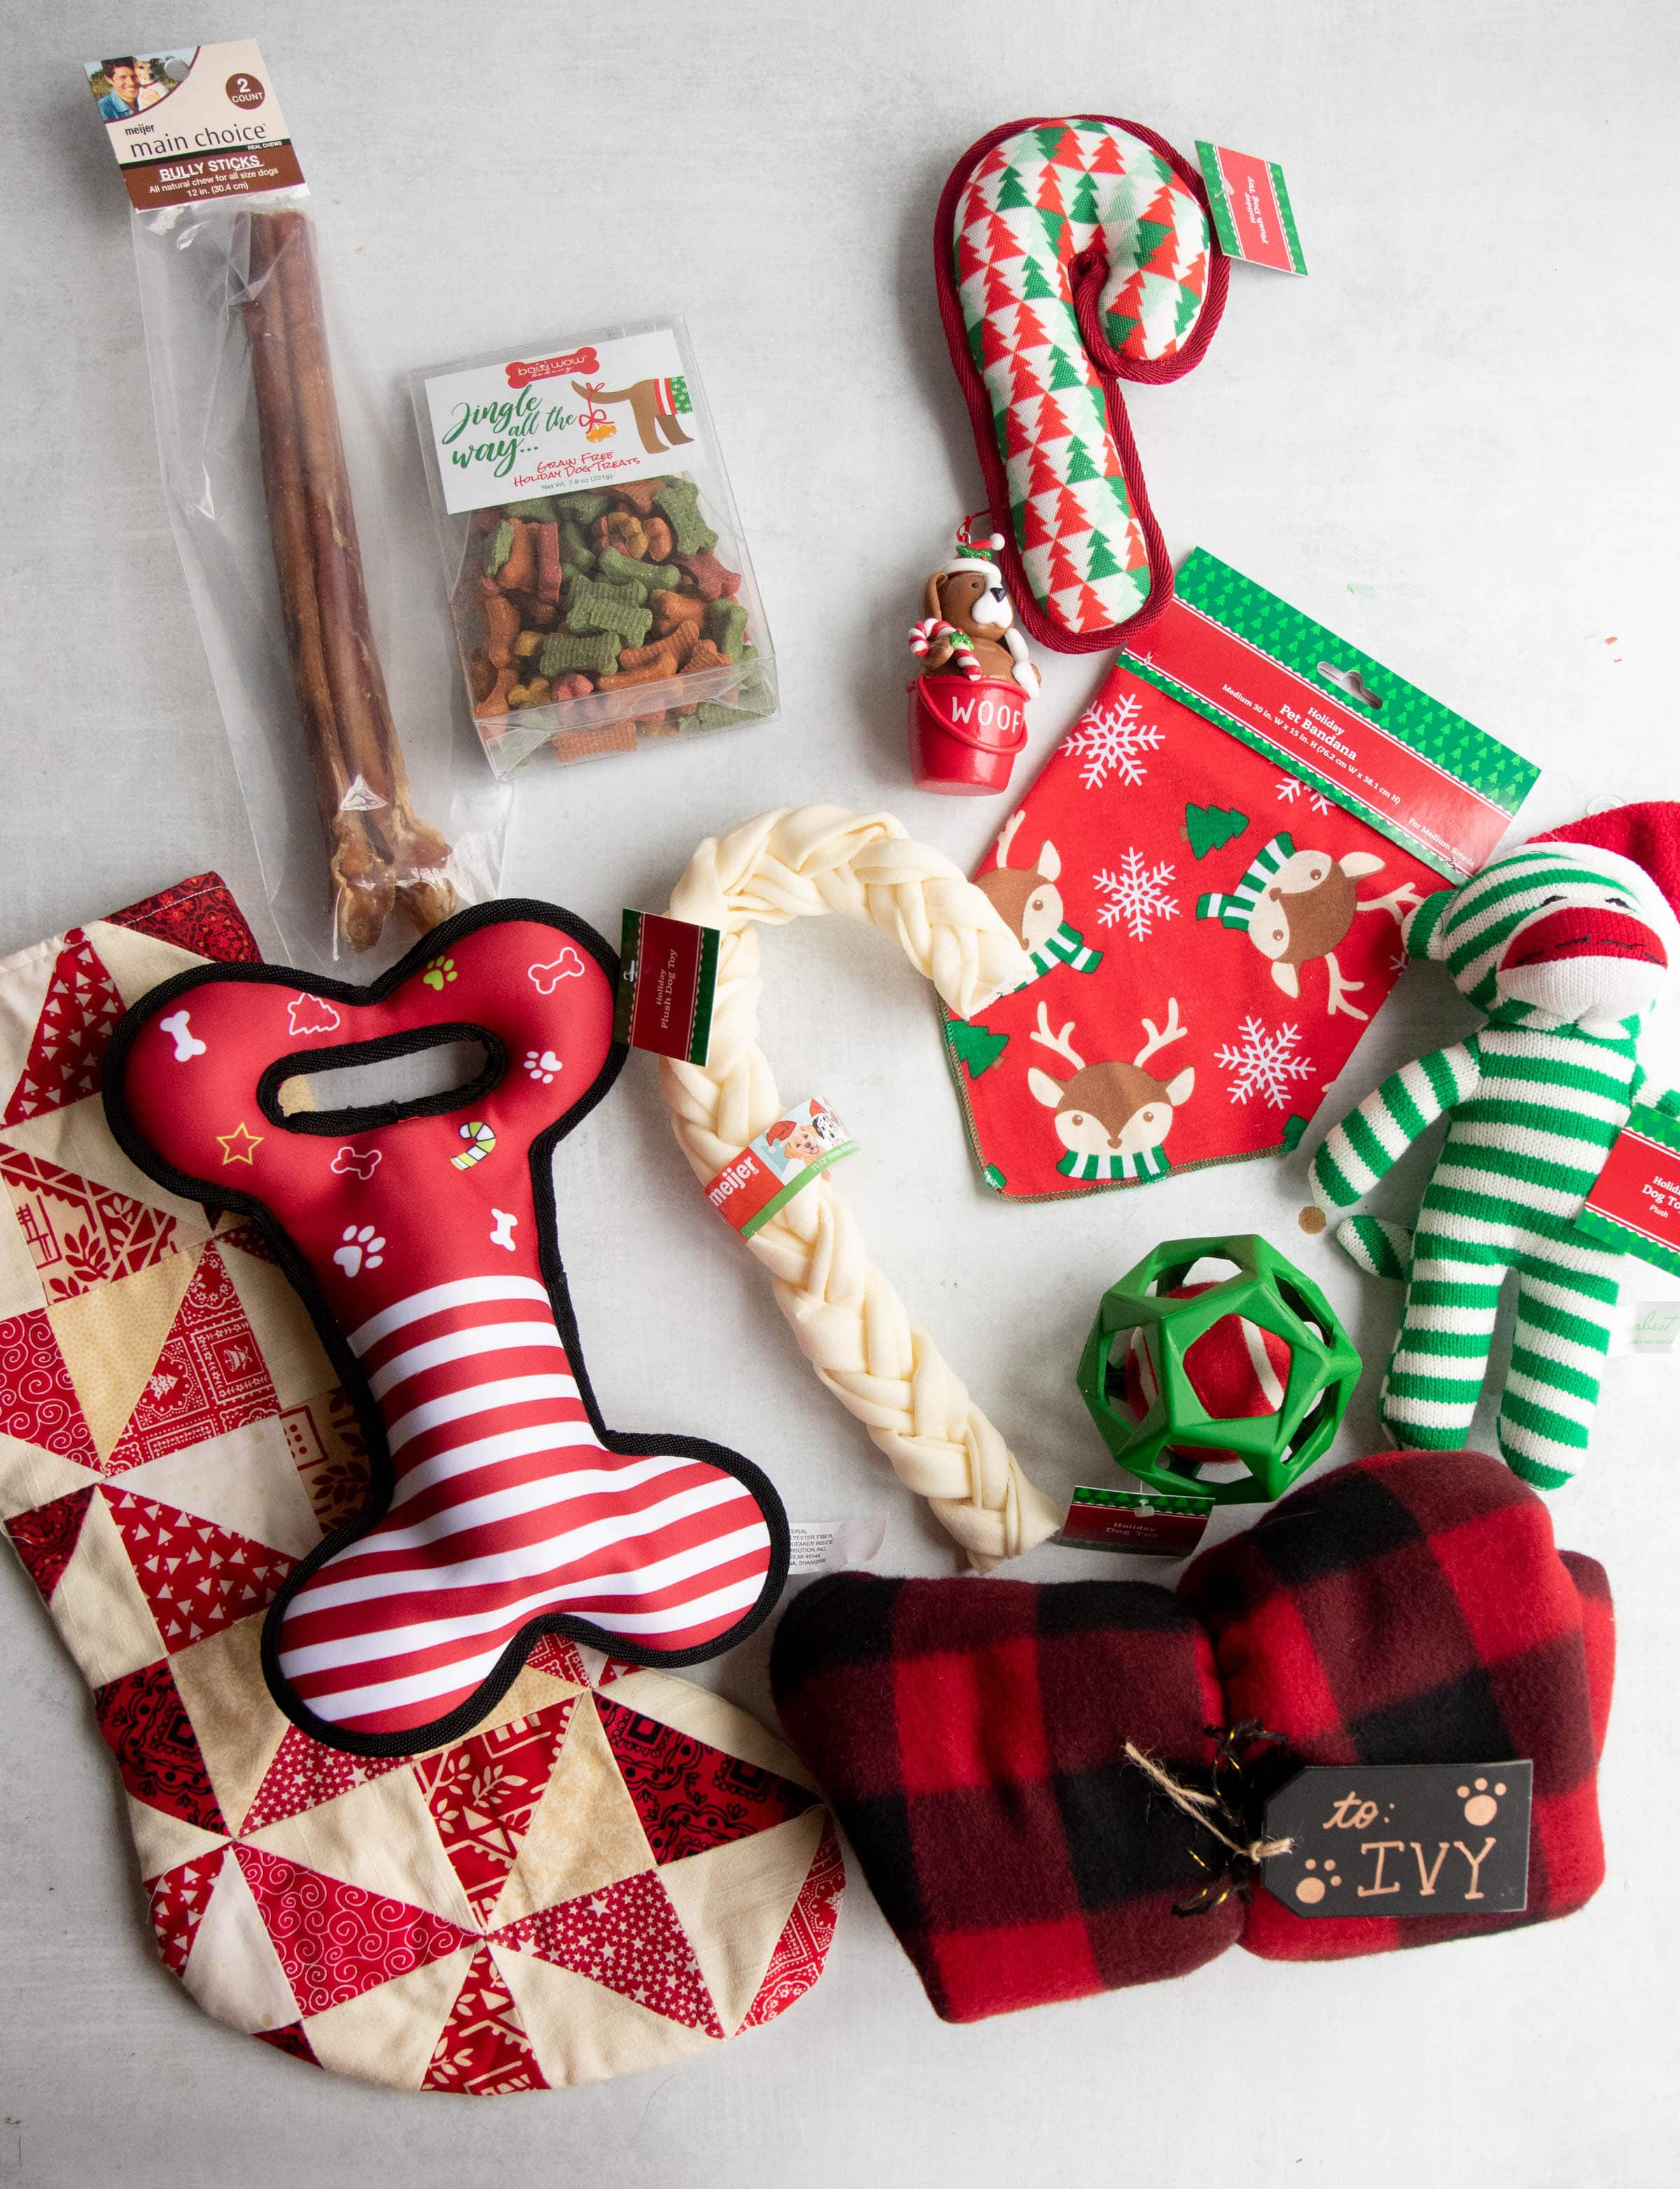 Stocking fillers for a dog - toys, treats, a red and white stocking, and a custom dog coat